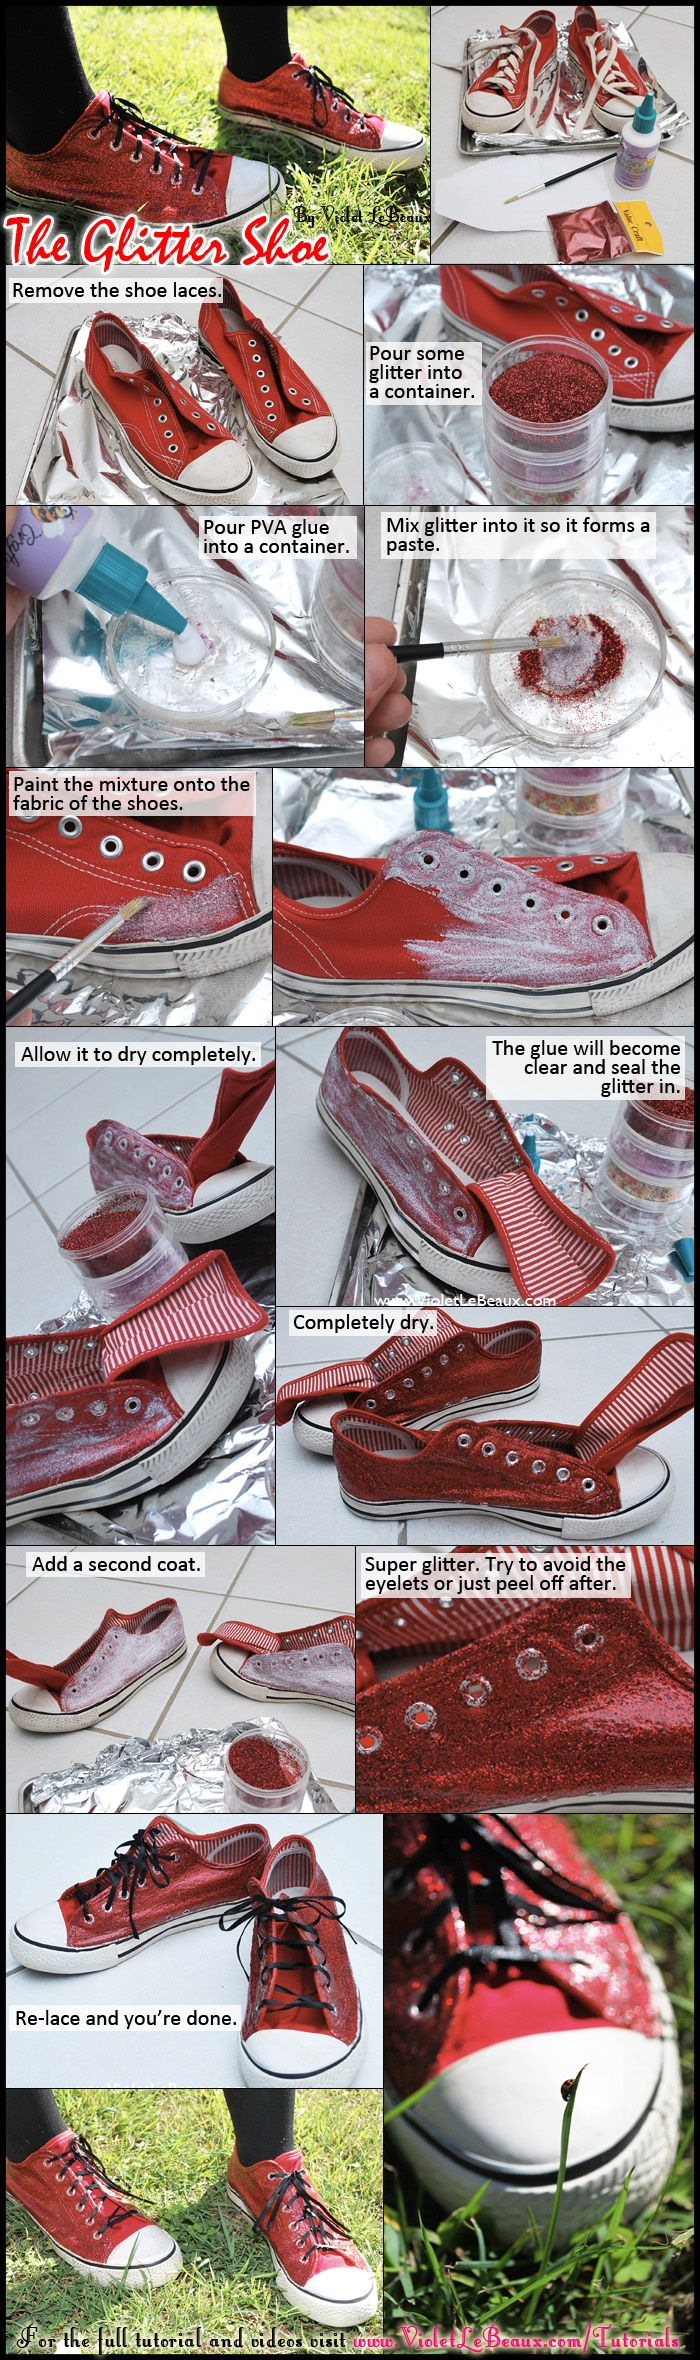 The simple way to make glitter shoes. Mixing with PVA first means there's no chance of a glittery mess everywhere.    Full original tutorial on my blog here: http://violetlebeaux.com/2010/05/sneaker-sunday-week-6-glitter-shoes/